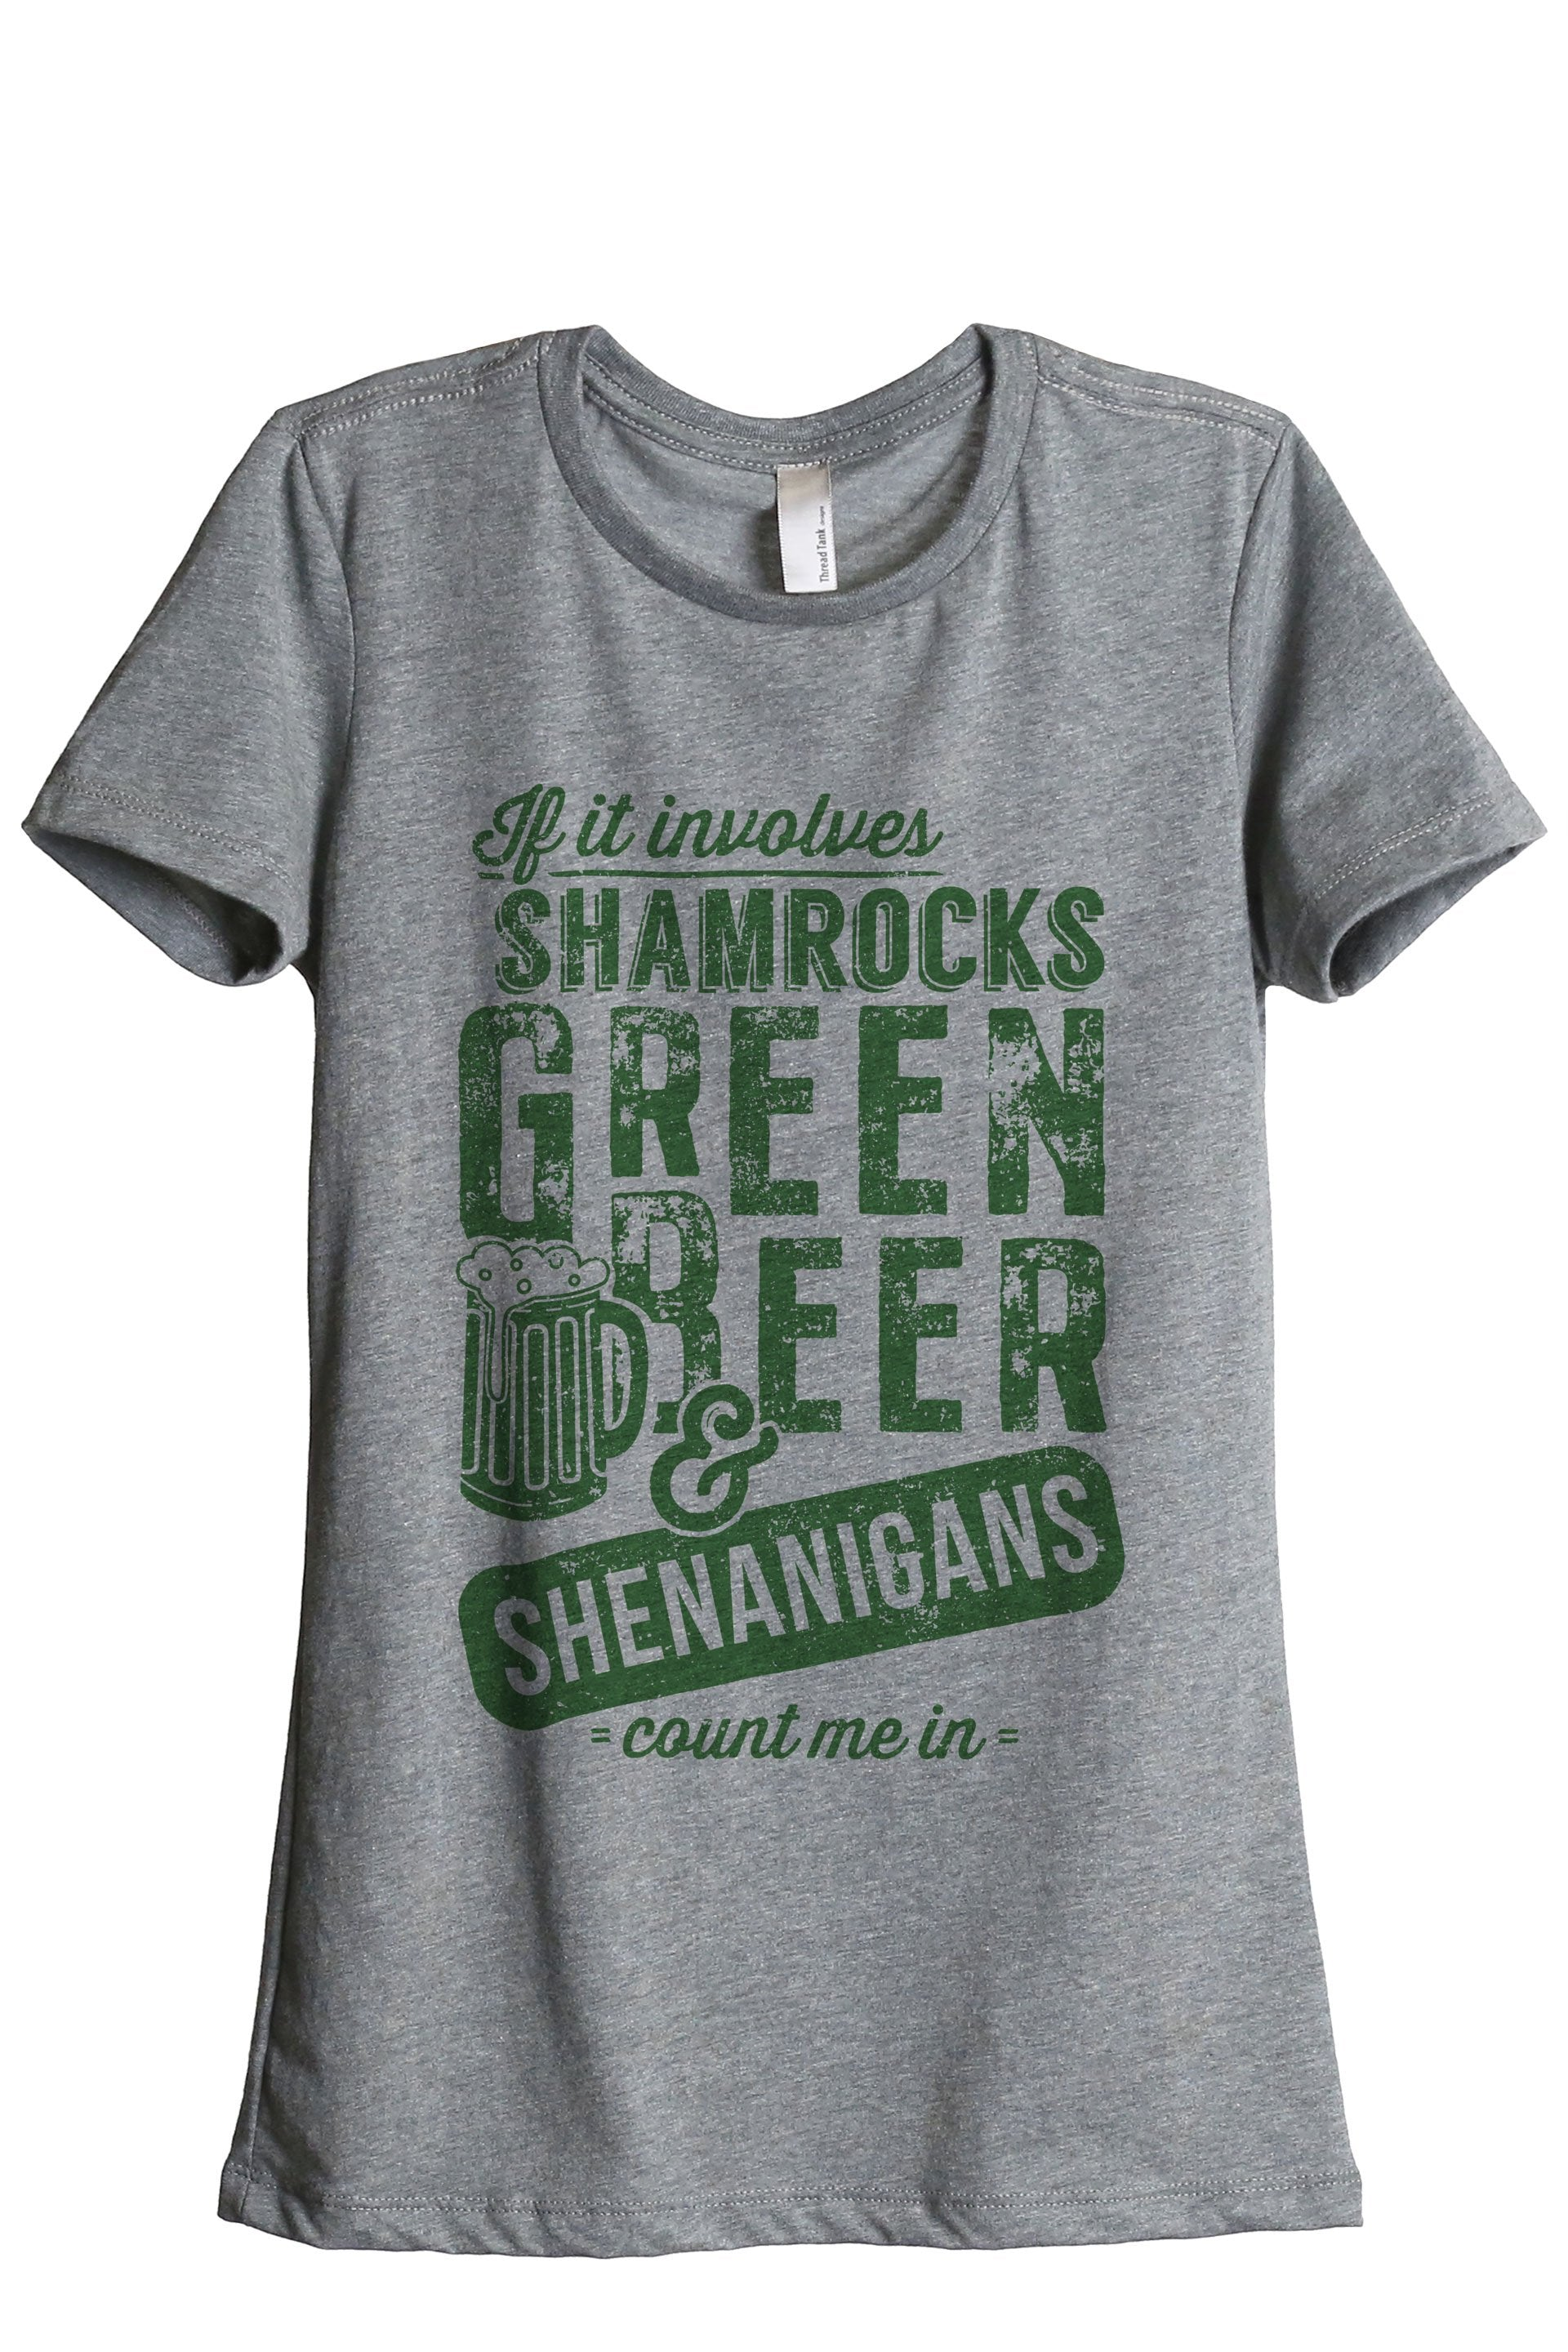 If It Involves Shamrocks Green Beer And Shenanigans Count Me In Women's Relaxed Crewneck Graphic T-Shirt Top Tee Exclusive Shamrock Green